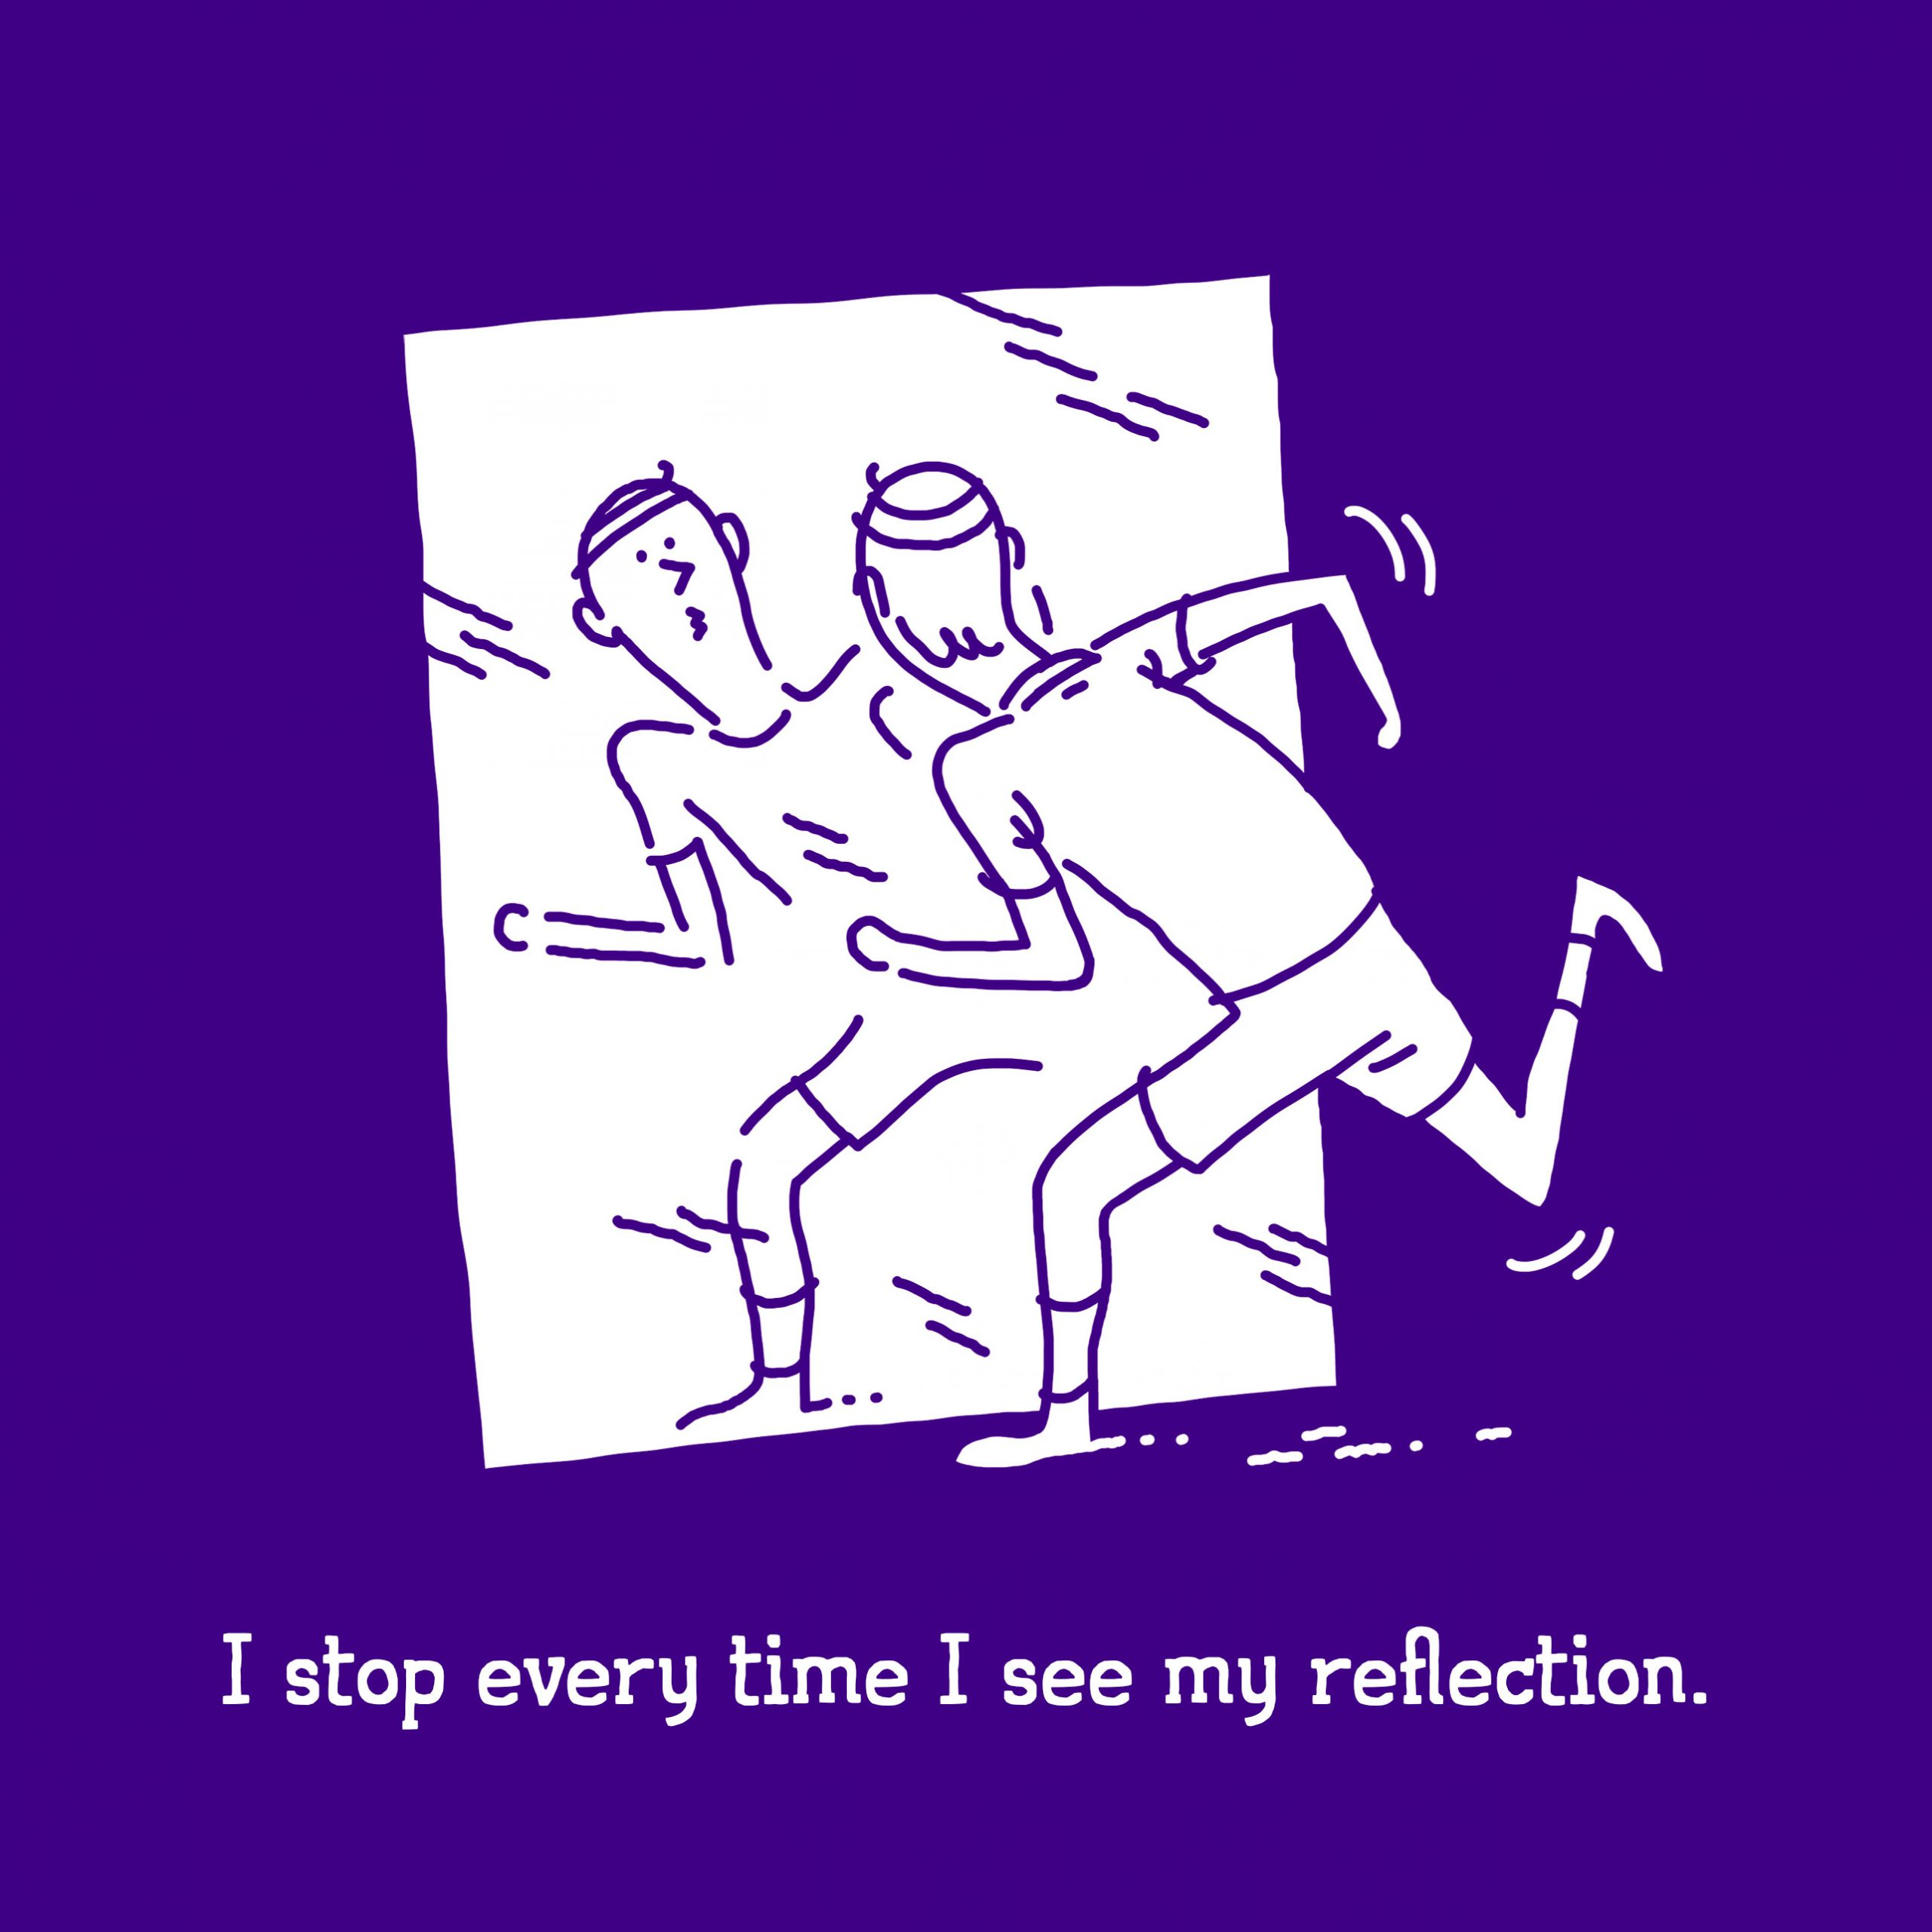 meetic-reflection